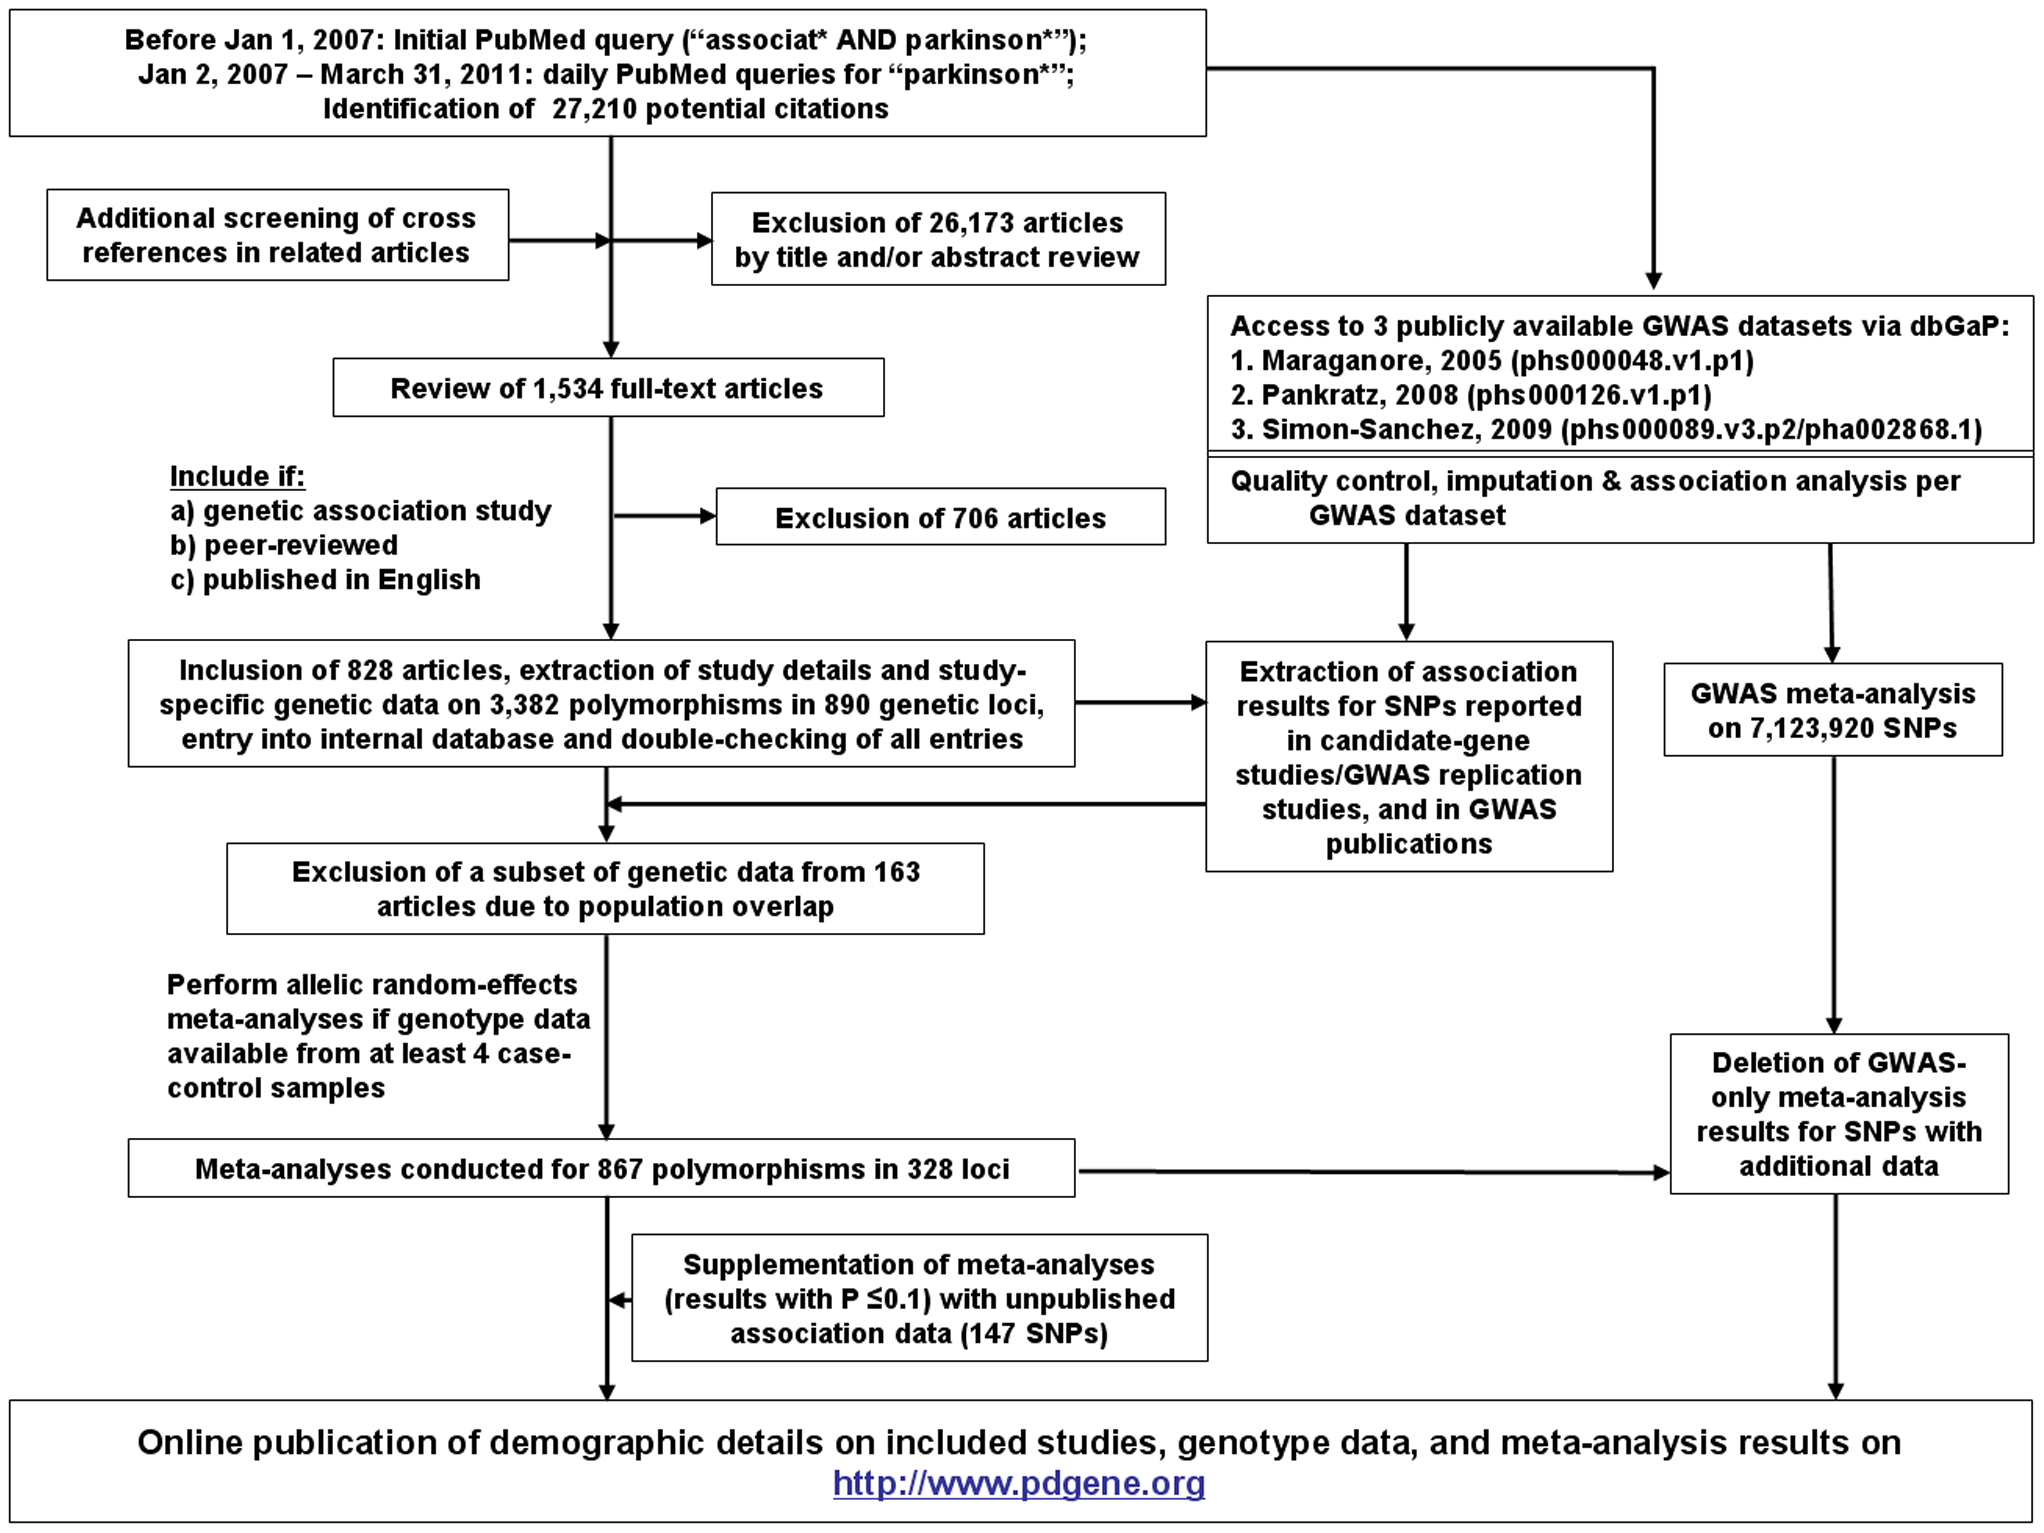 Flowchart of literature search, data extraction, and analysis strategies applied for PDGene.